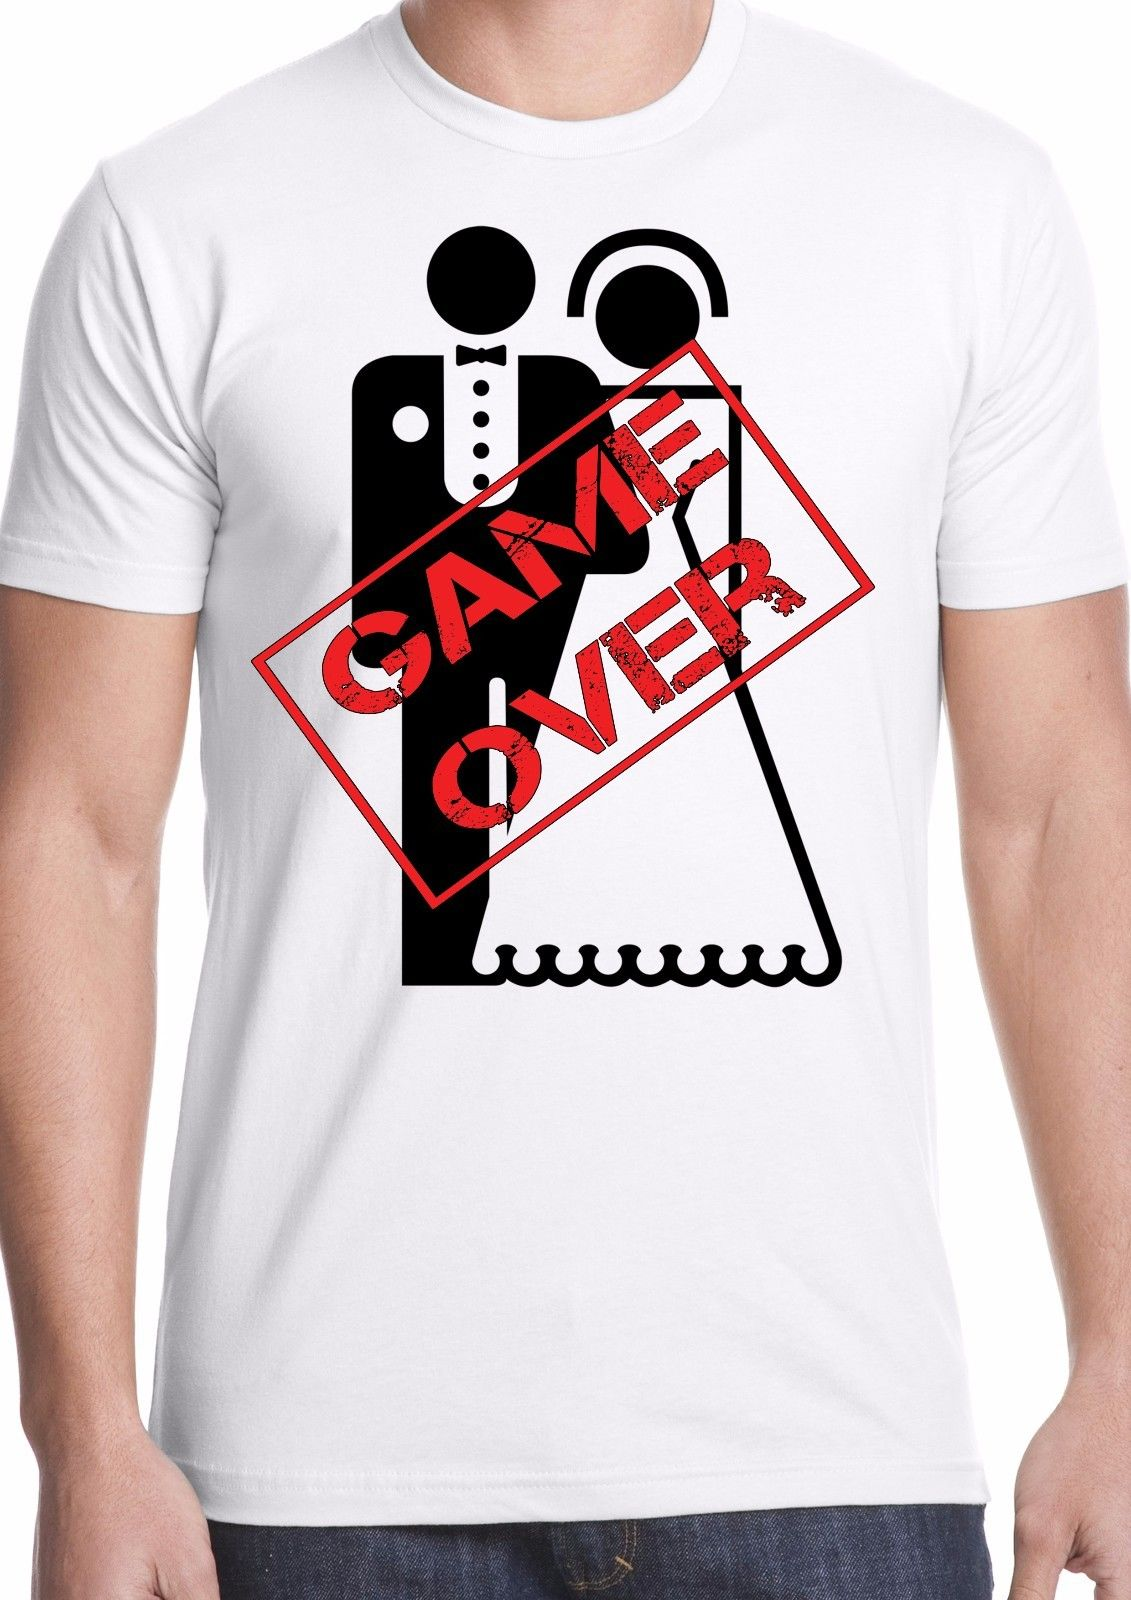 game over t-shirt stag do marriage gift personalised funny humor wedding groom Print T Shirt Men Hot top tee